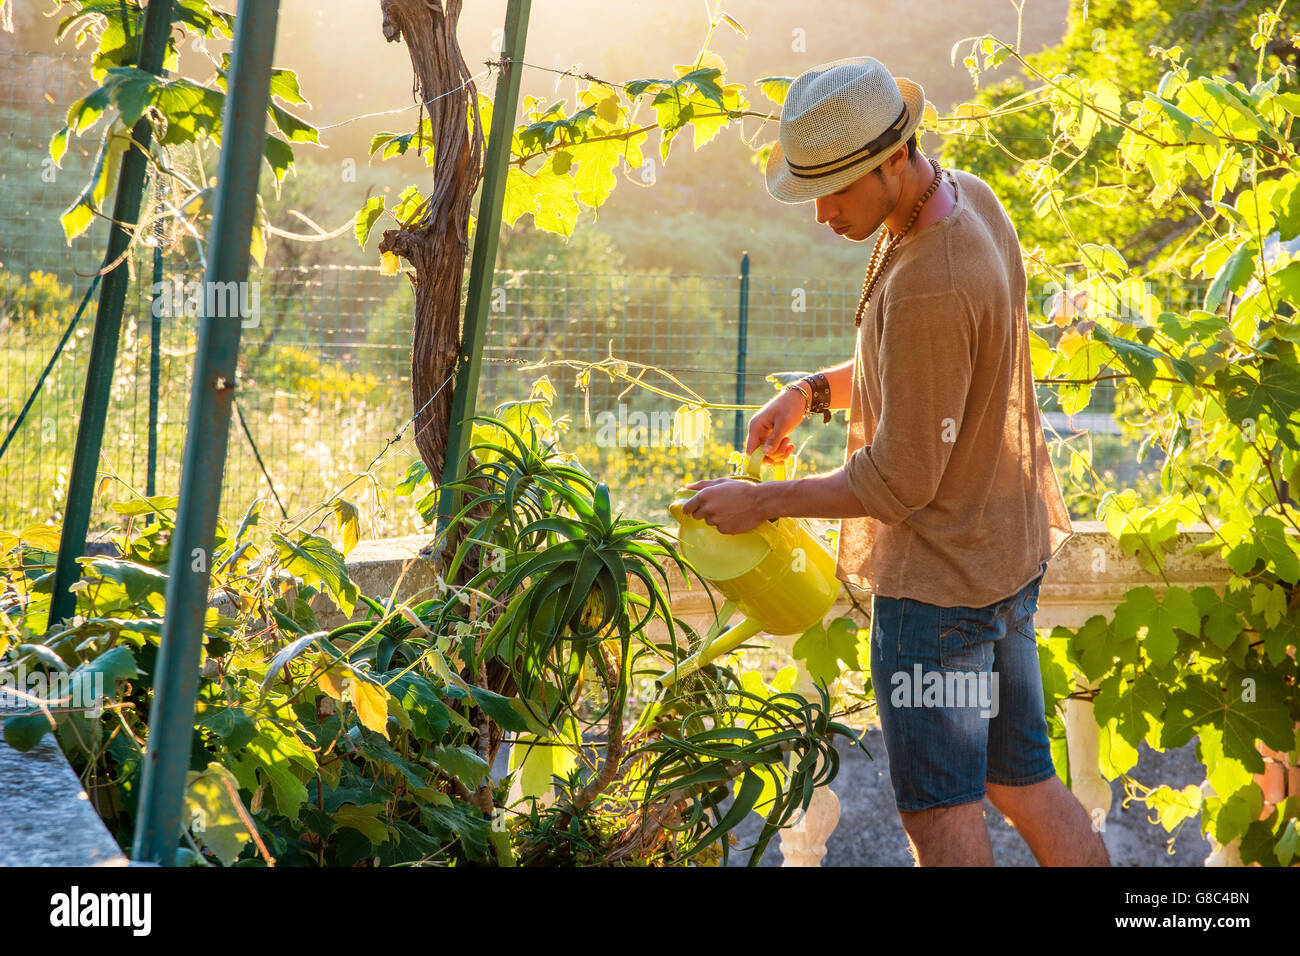 Side view of young stylish man watering plants in garden in sunlight Stock Photo